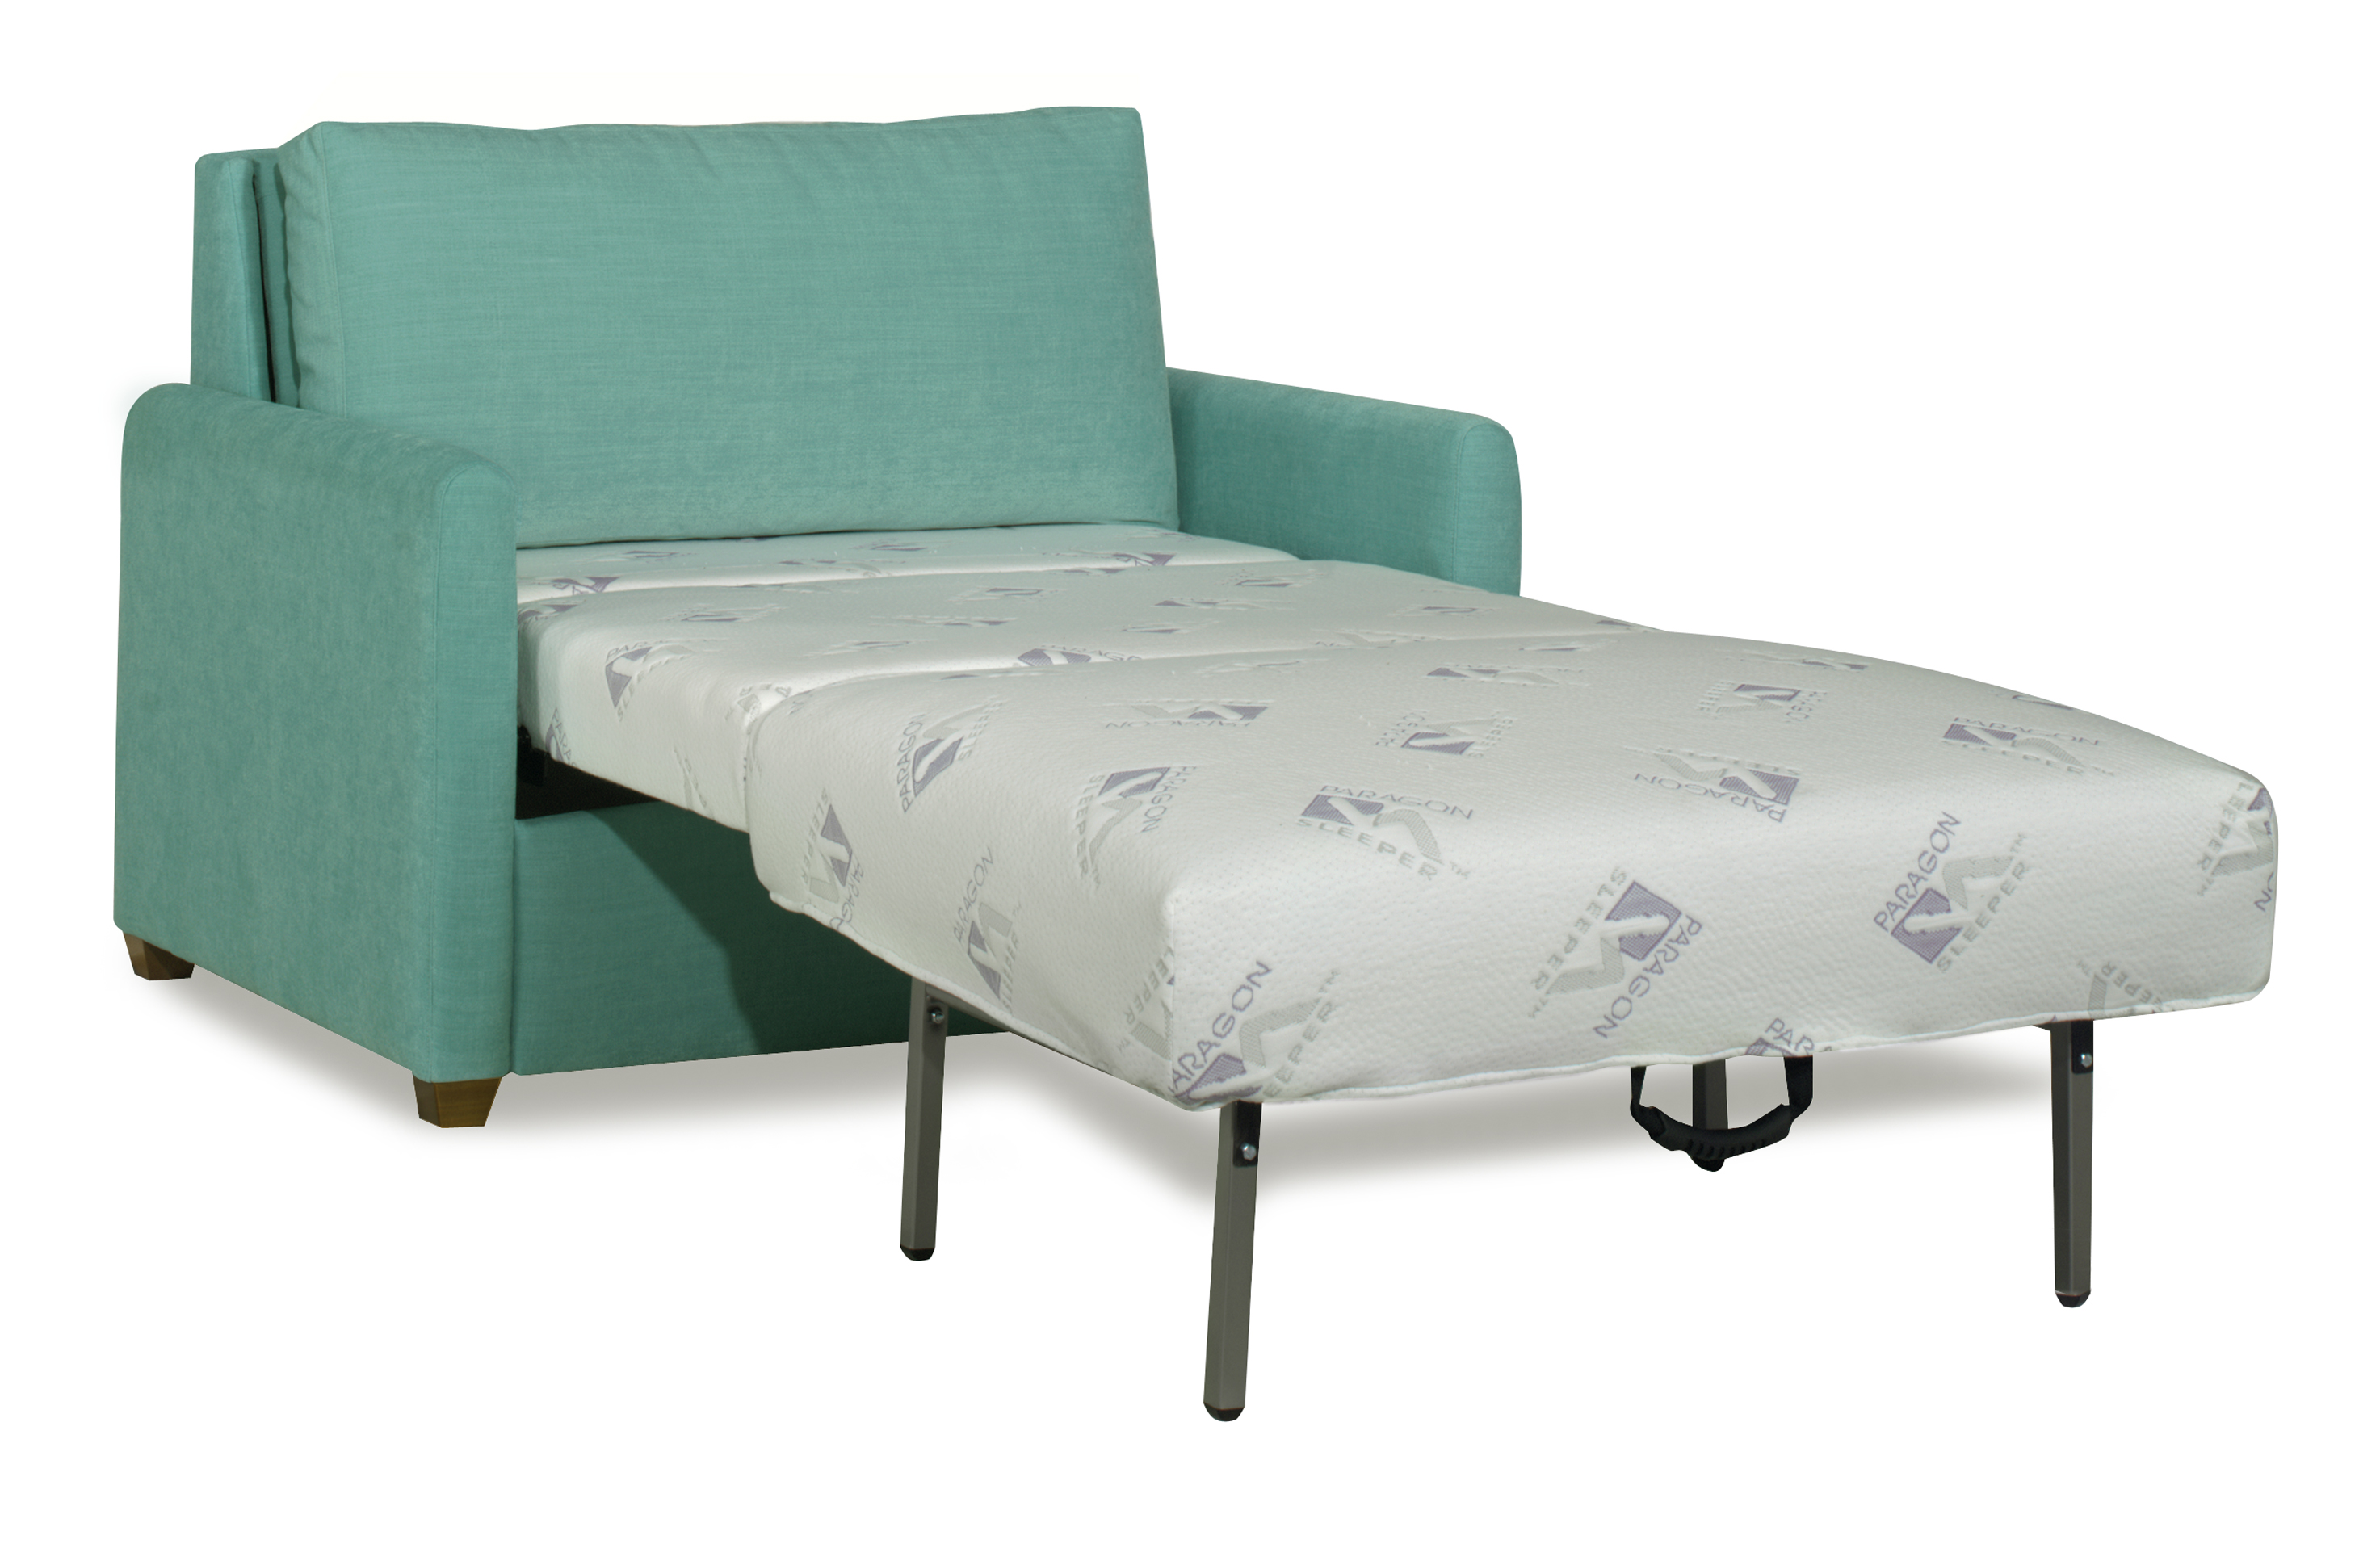 Turquoise Twin Sofa Sleeper Chair